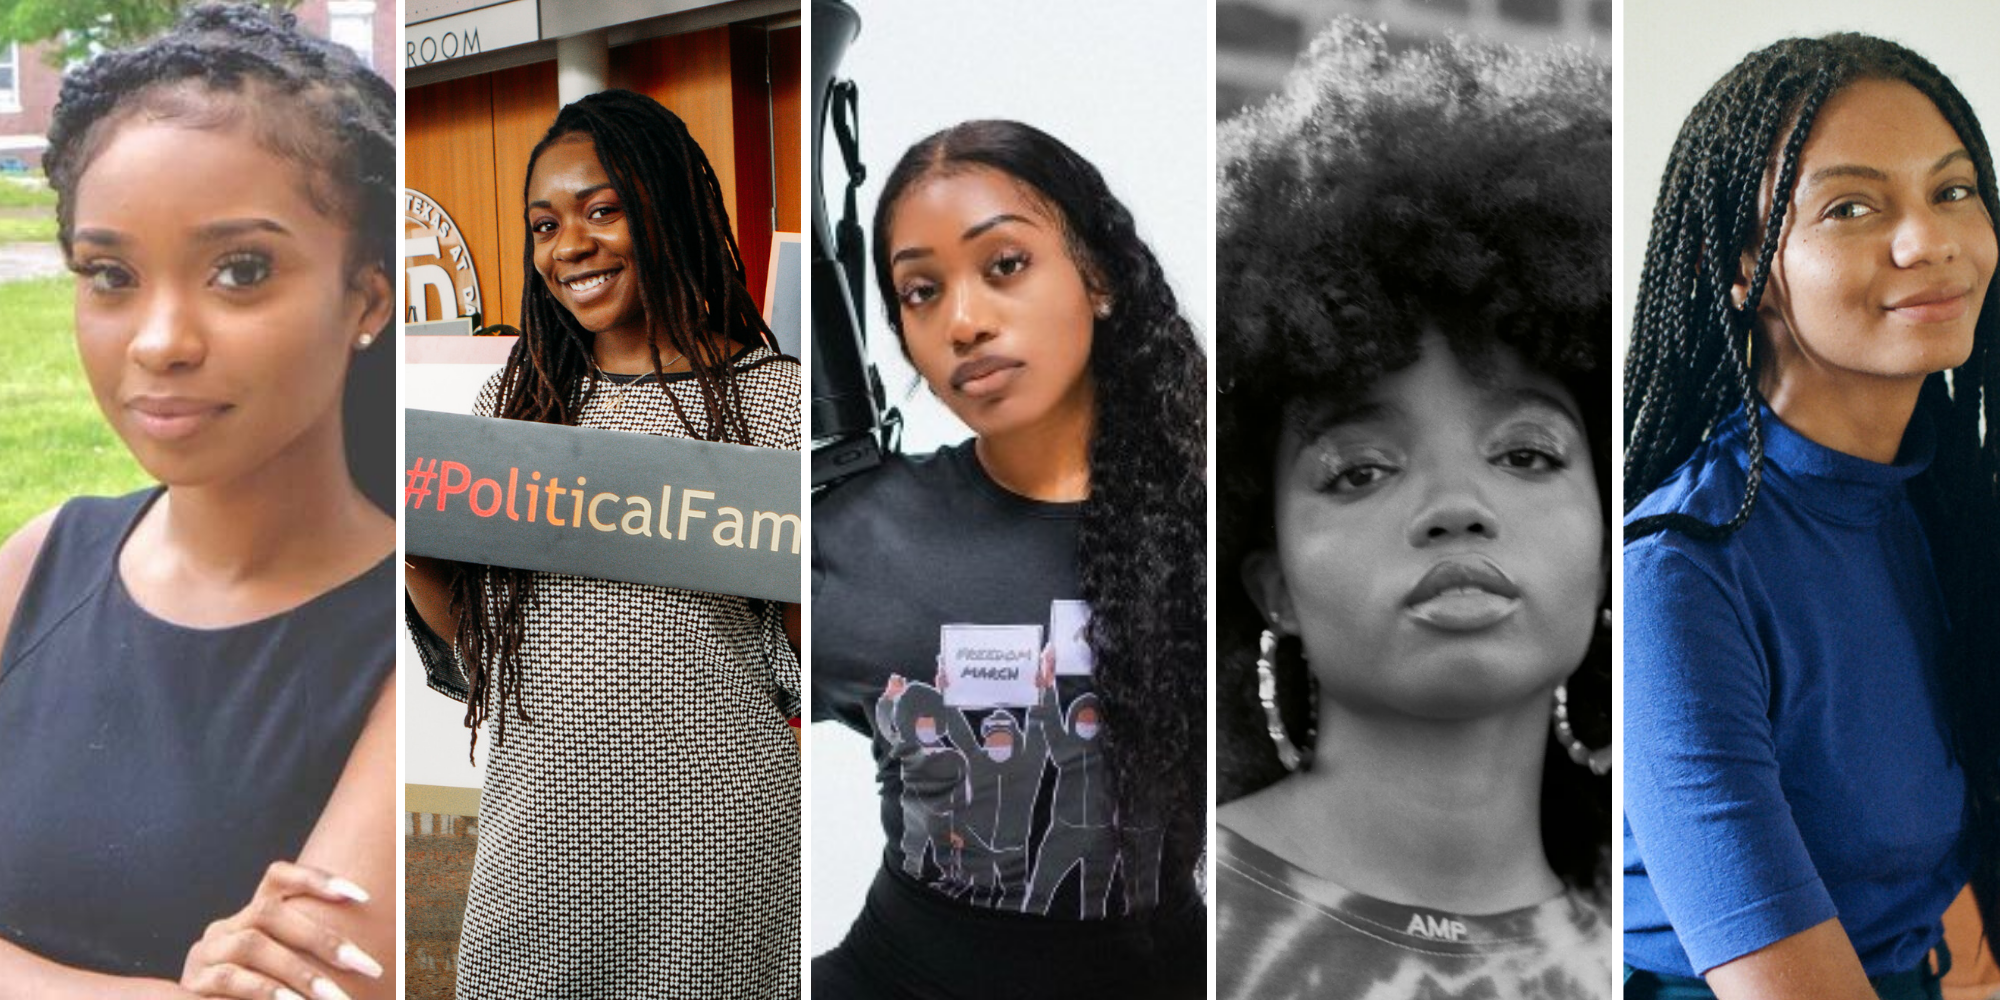 Meet the young Black activists advocating for change